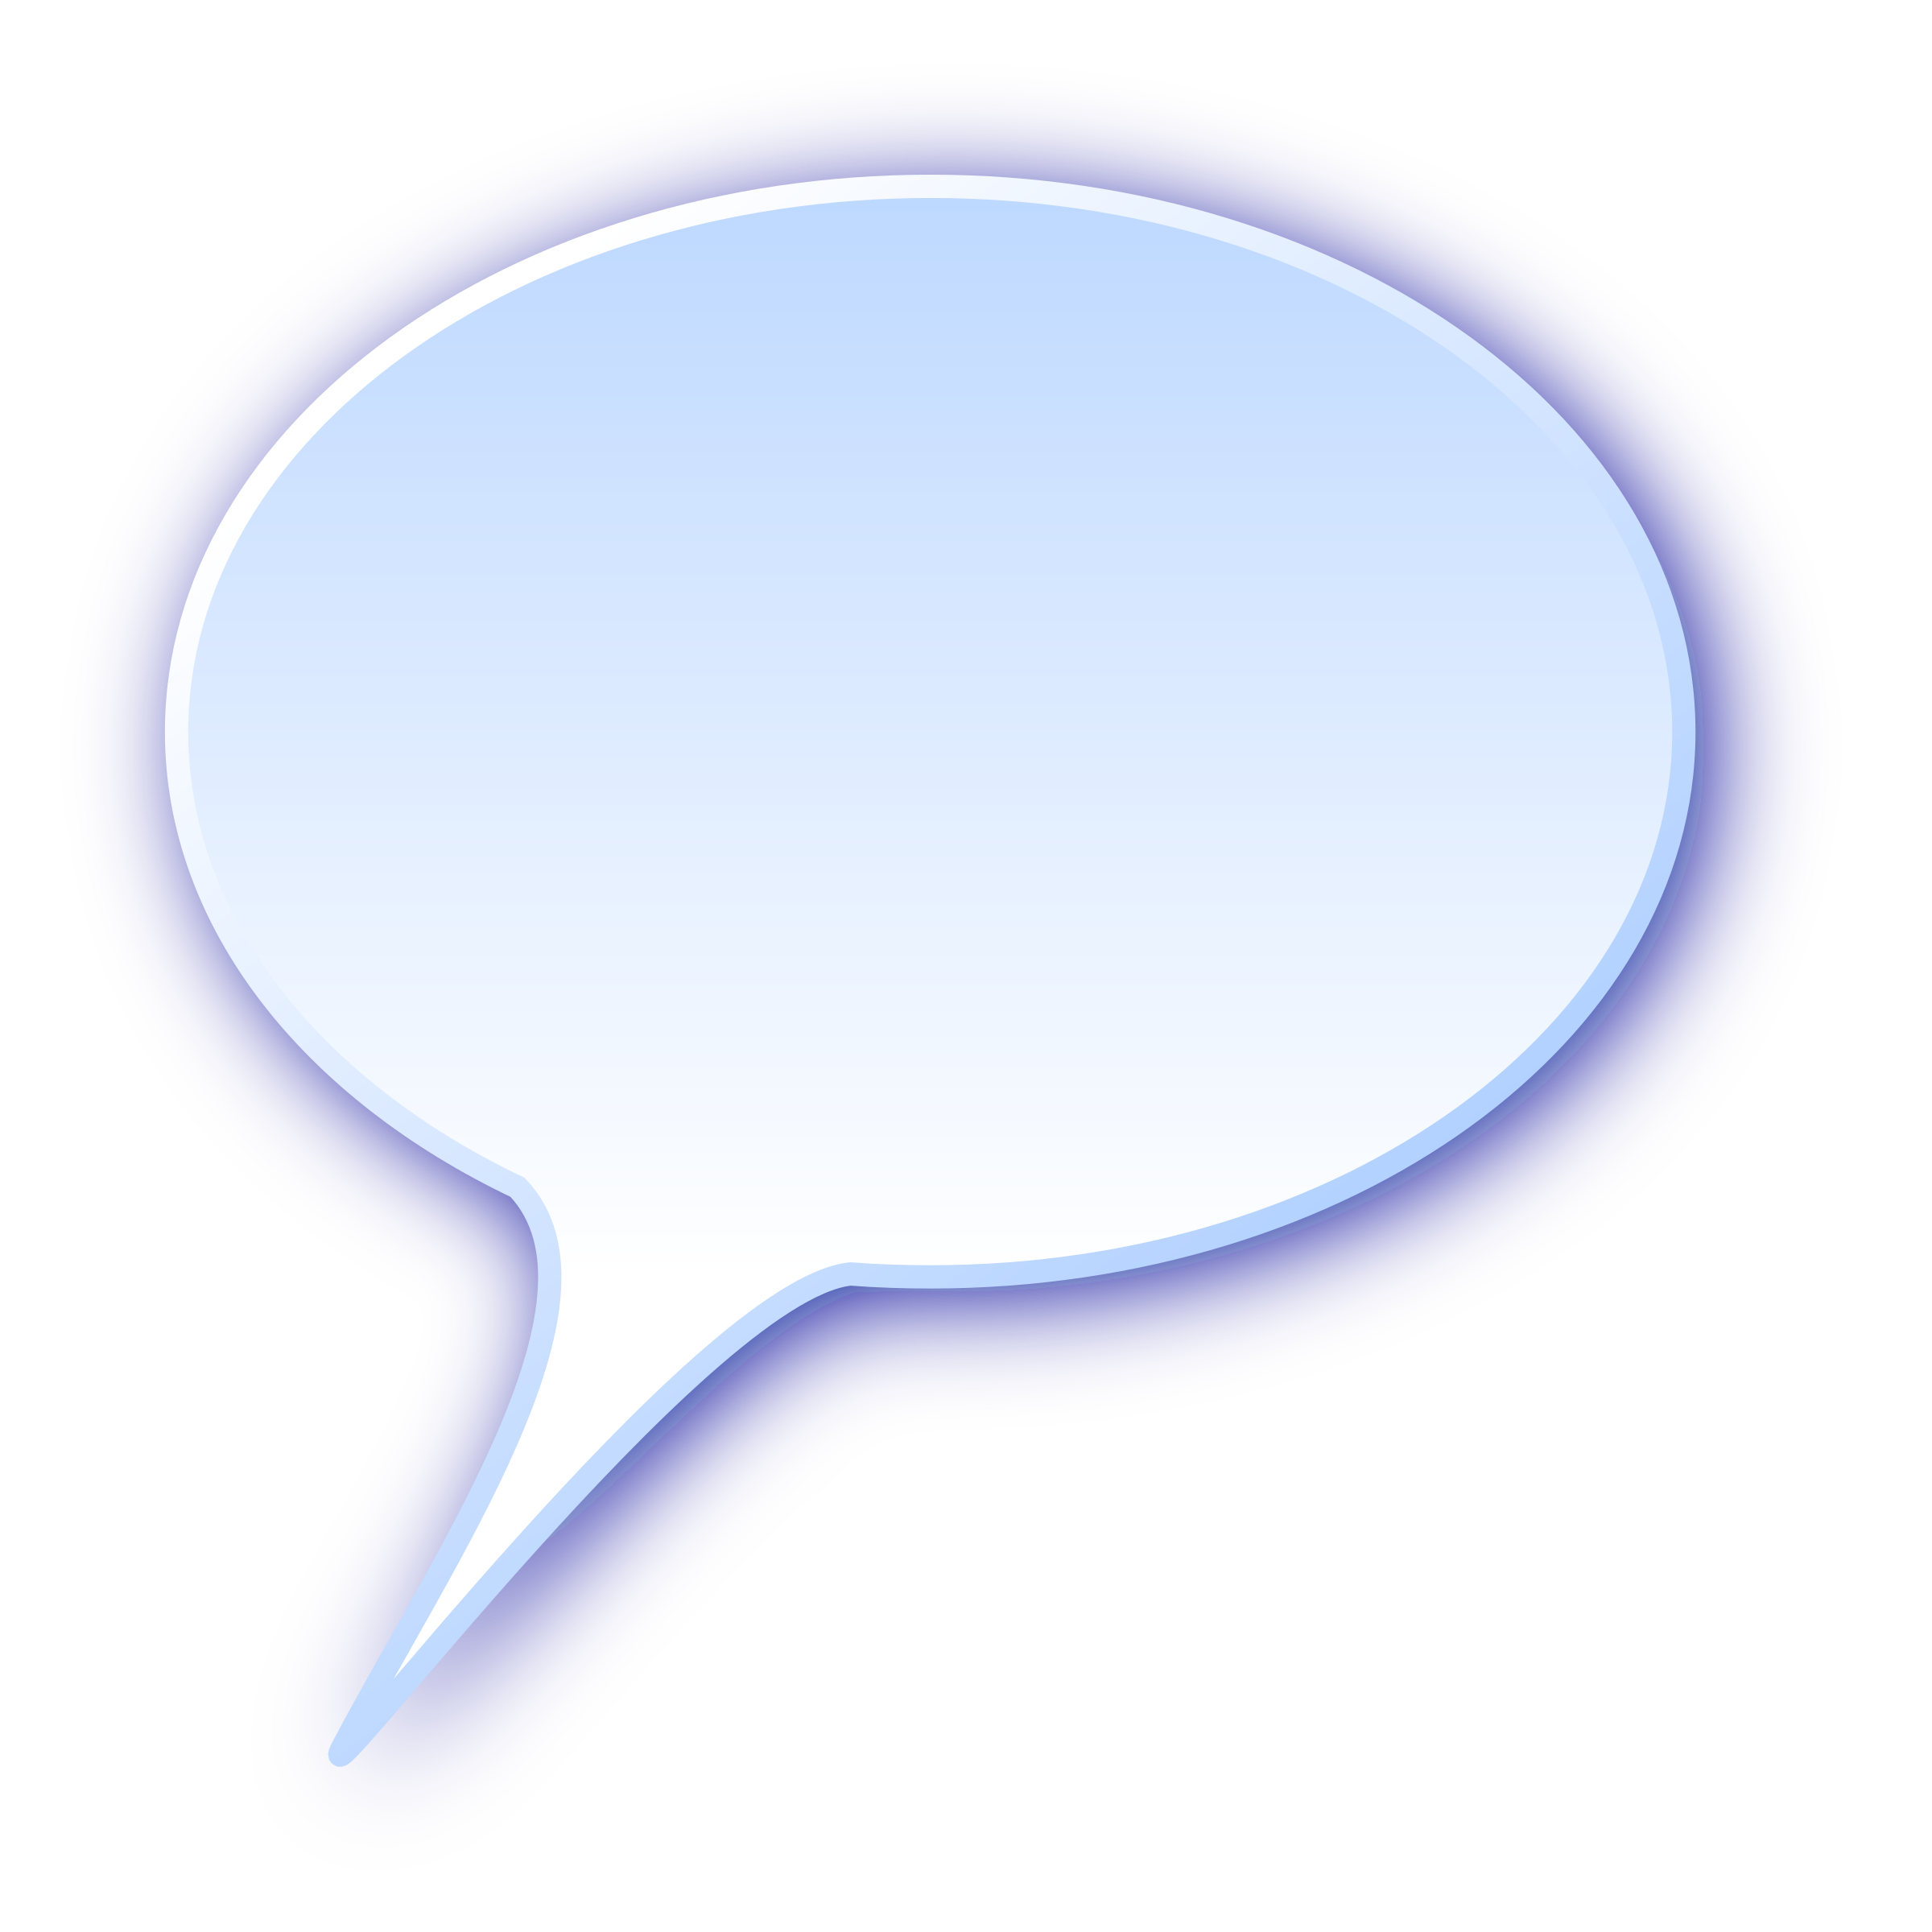 Speech Bubble Png image #15300